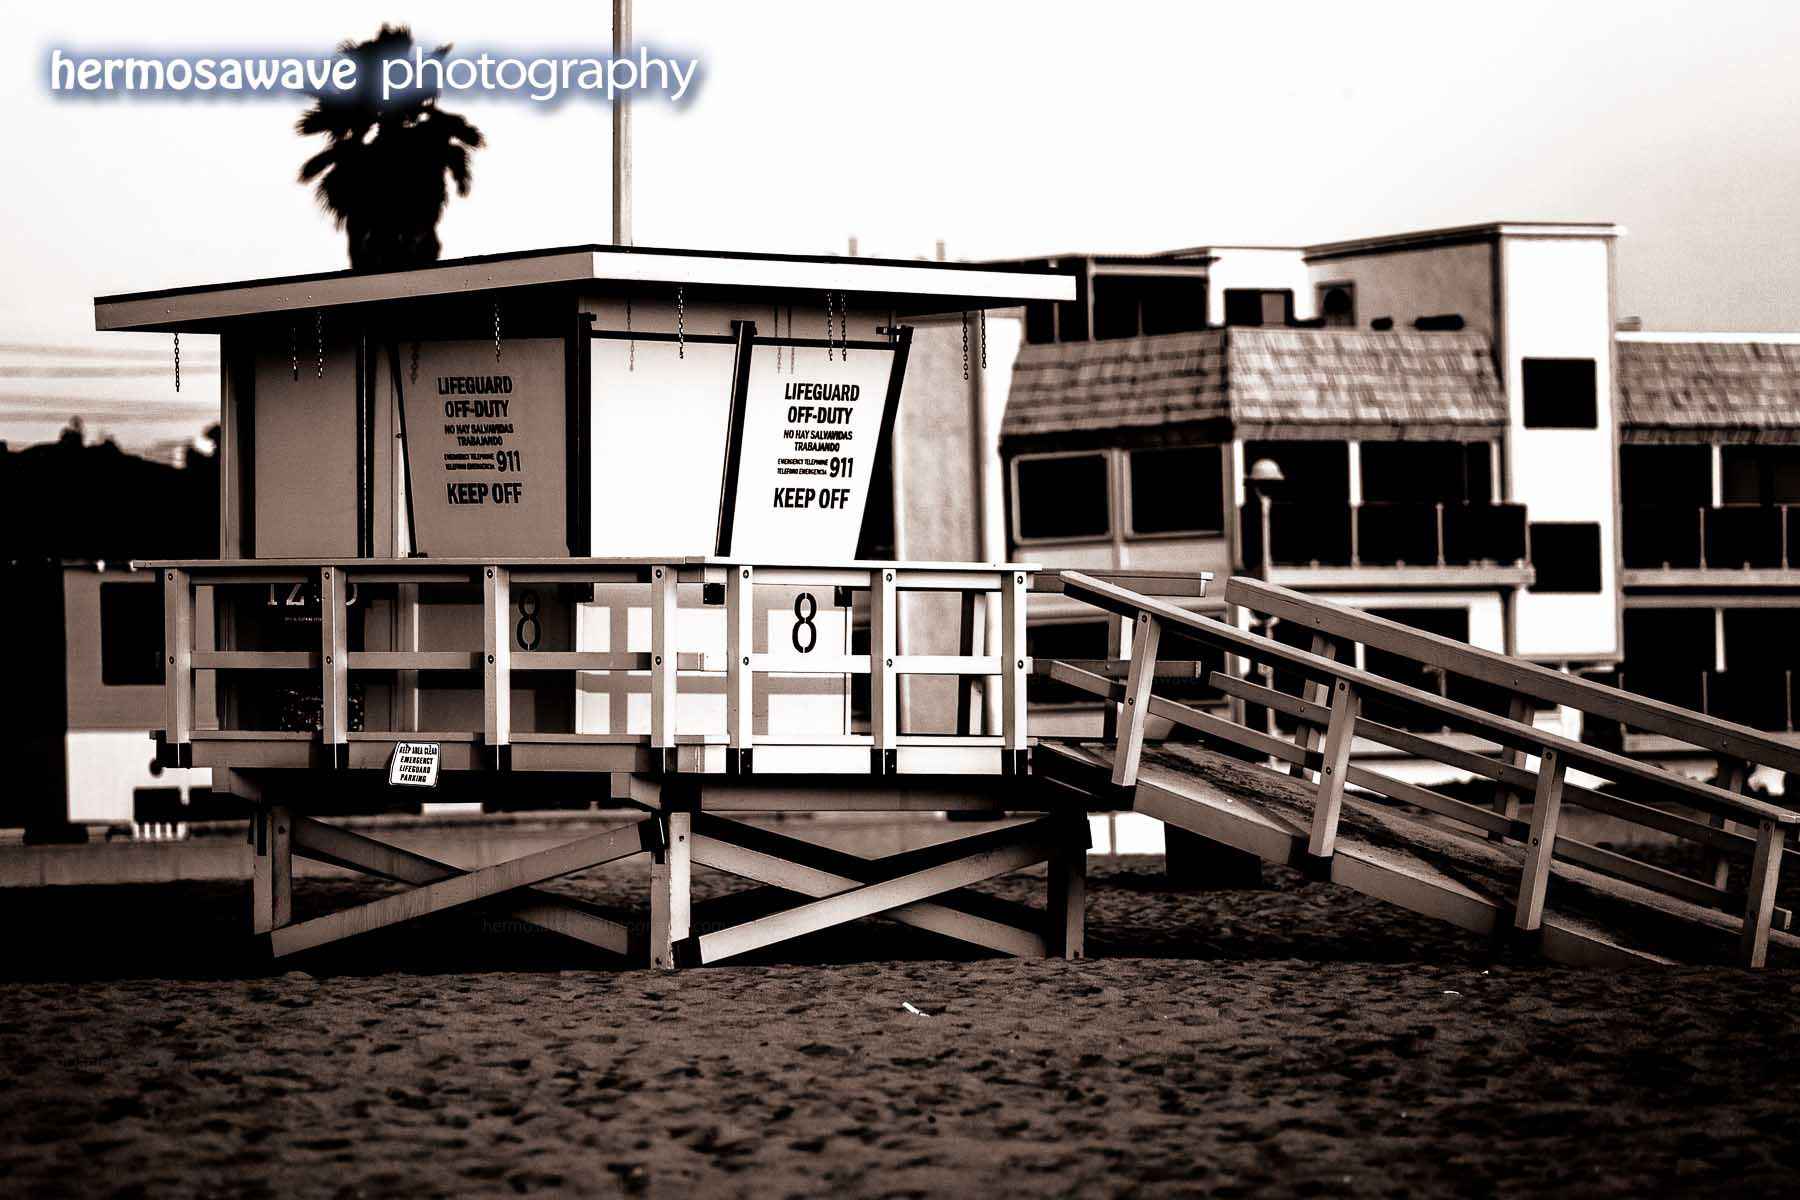 8th St. Lifeguard Tower